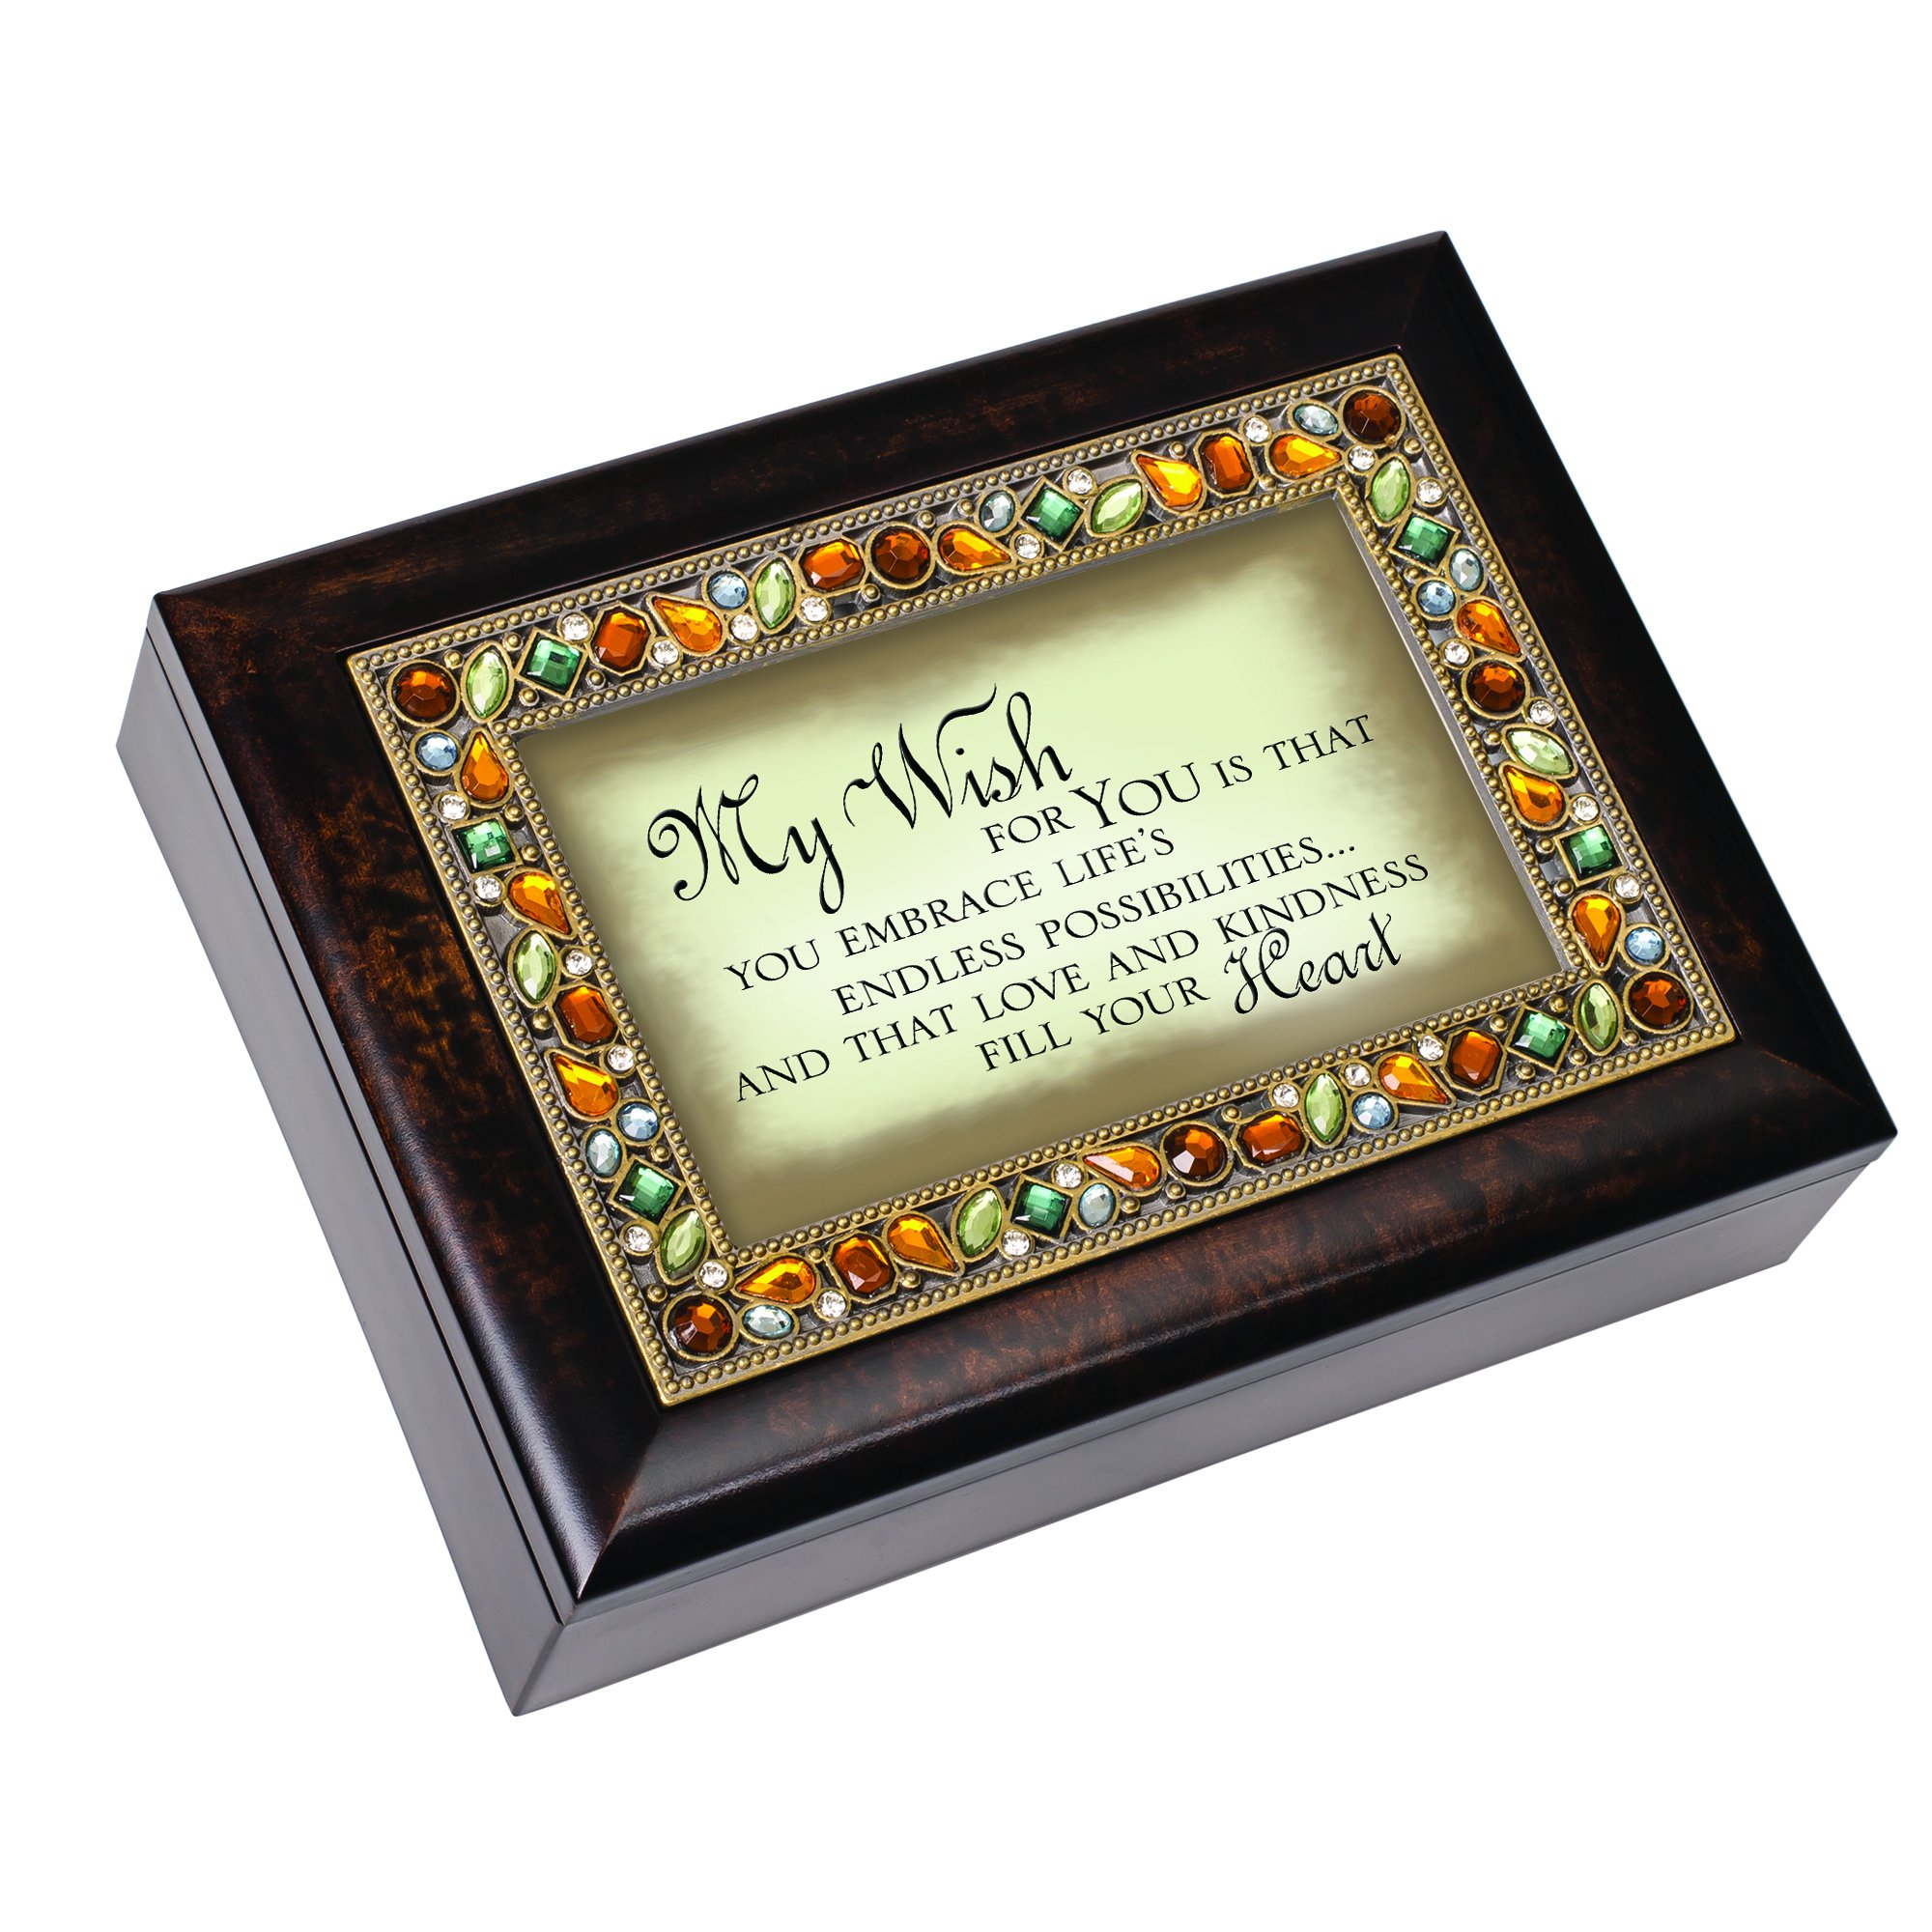 Cottage Garden My Wish for You Italian Style Burlwood Finish Decorative Jewel Lid Musical Jewelry Box - Plays Edelweiss